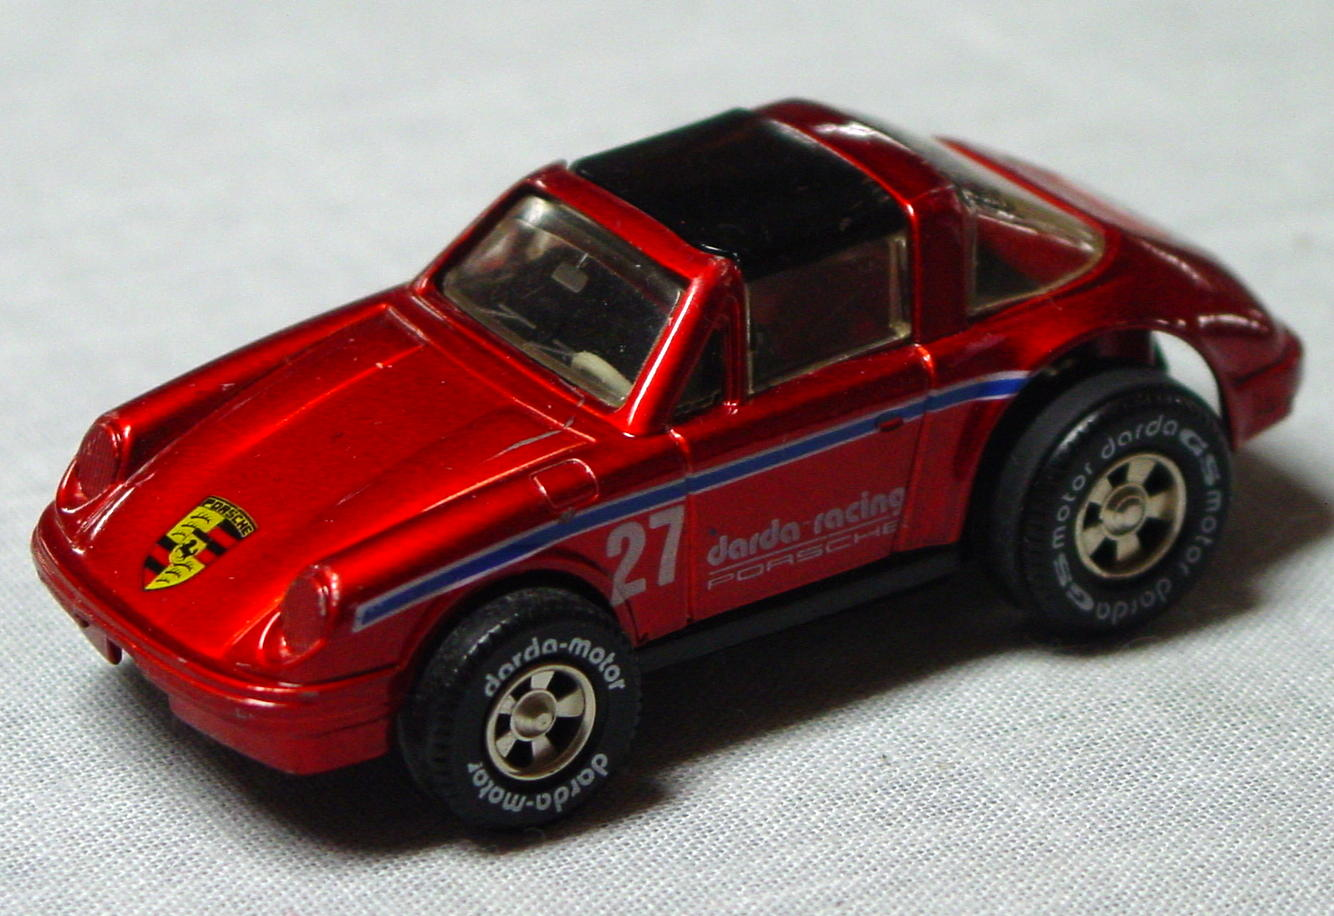 64 - DARDA Porsche met Red CHINA